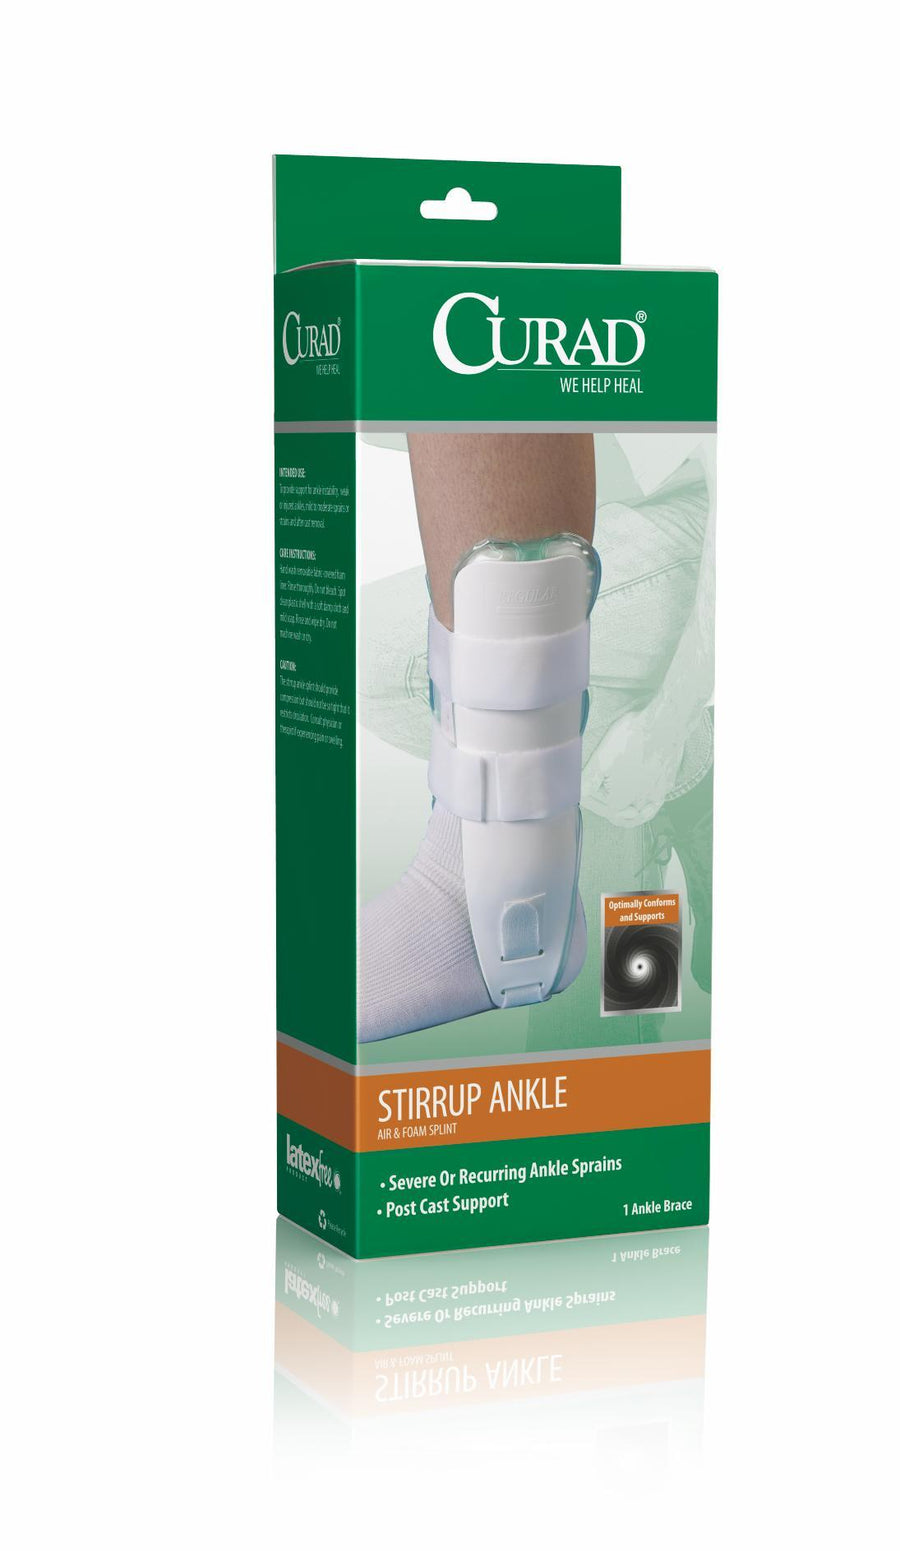 CURAD Universal Stirrup Ankle Splints,White,Universal, Case of 4